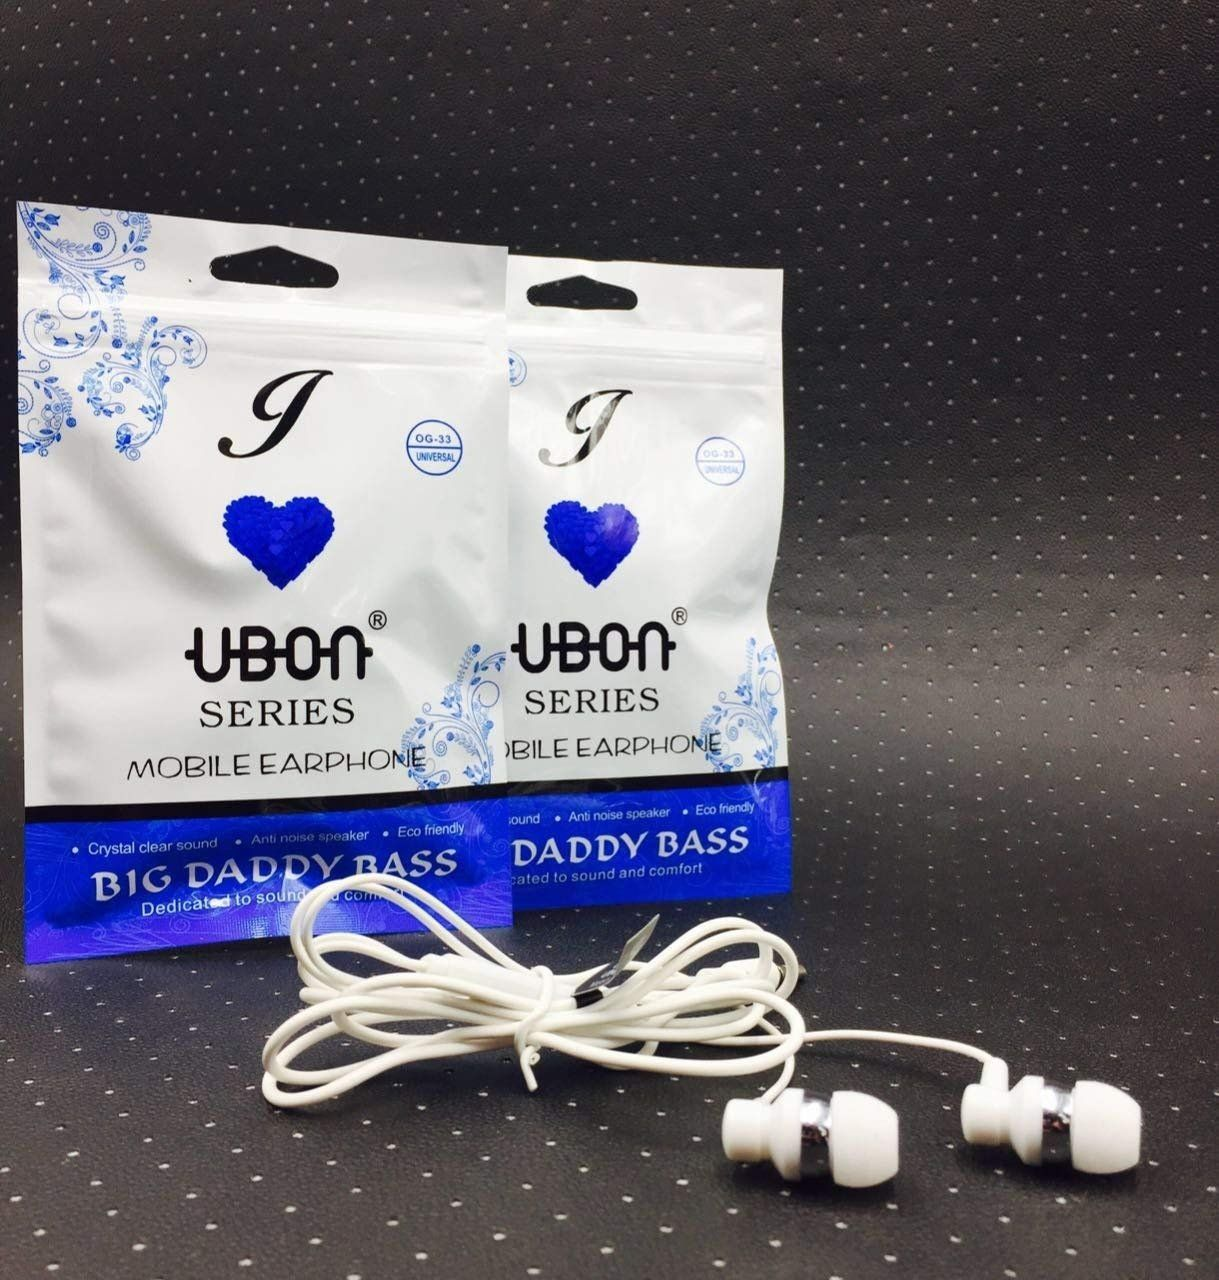 Buy Prithvi I Love Ubon Series Bass In Ear Headphones With Mic By A J Mobile Accessories At Low Prices Headphone With Mic In Ear Headphones Mobile Accessories